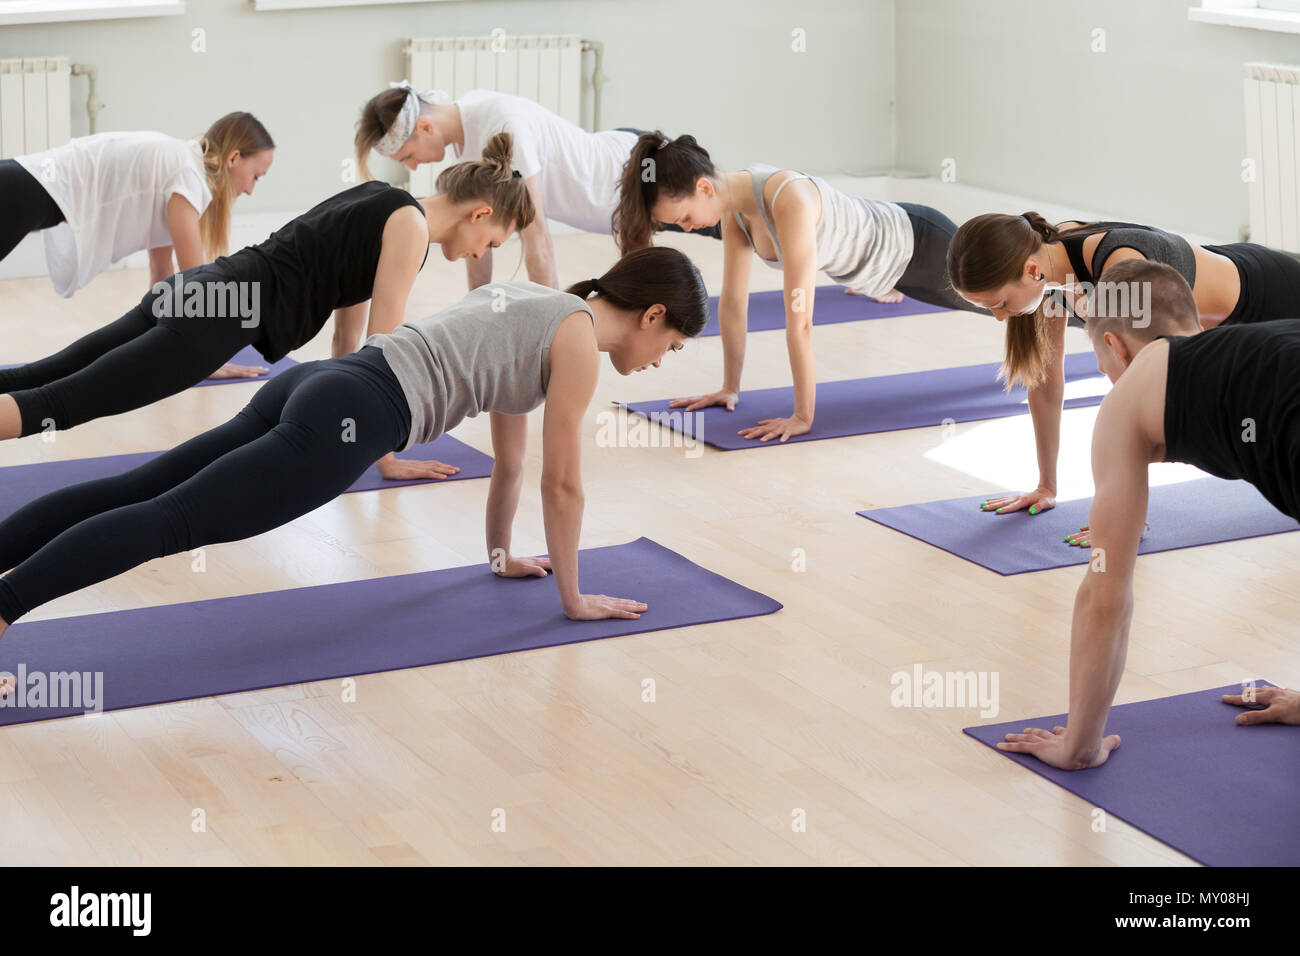 Group of young sporty people practicing yoga lesson, doing Plank exercise, Push ups or press ups pose, working out, indoor full length, students train - Stock Image